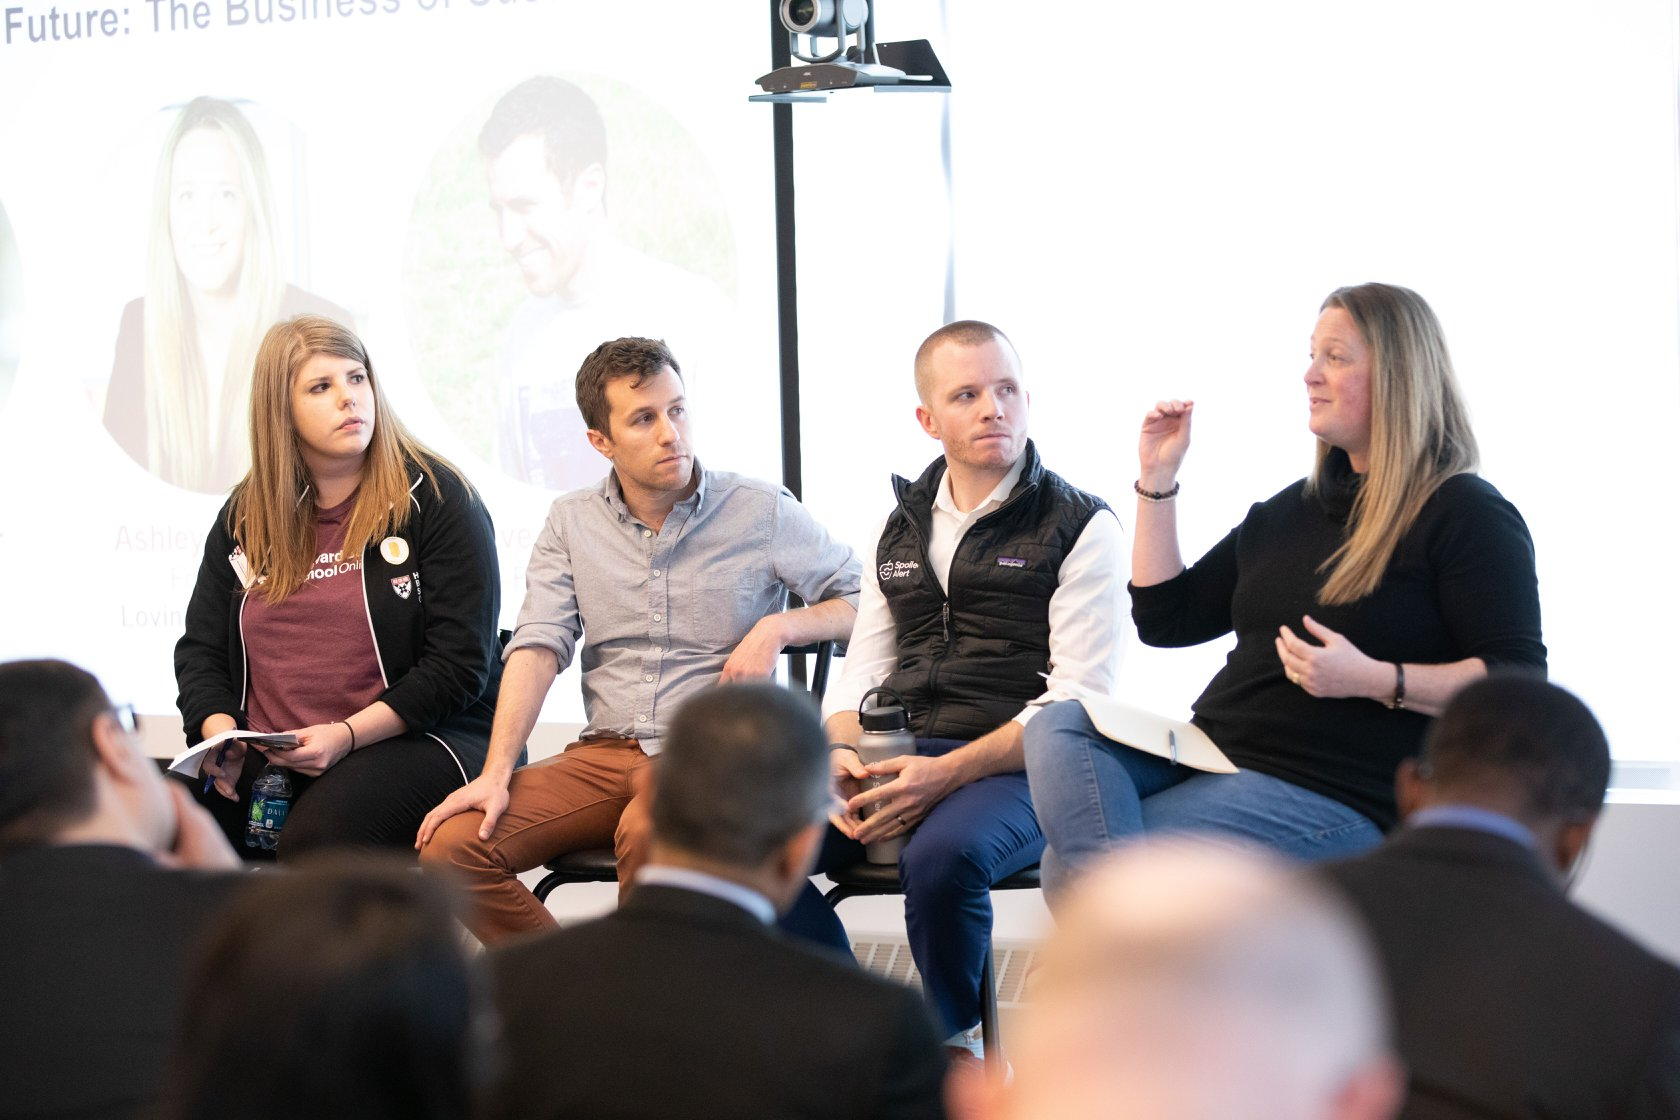 Harvard Business School staff discuss with entrepreneurs in a seminar